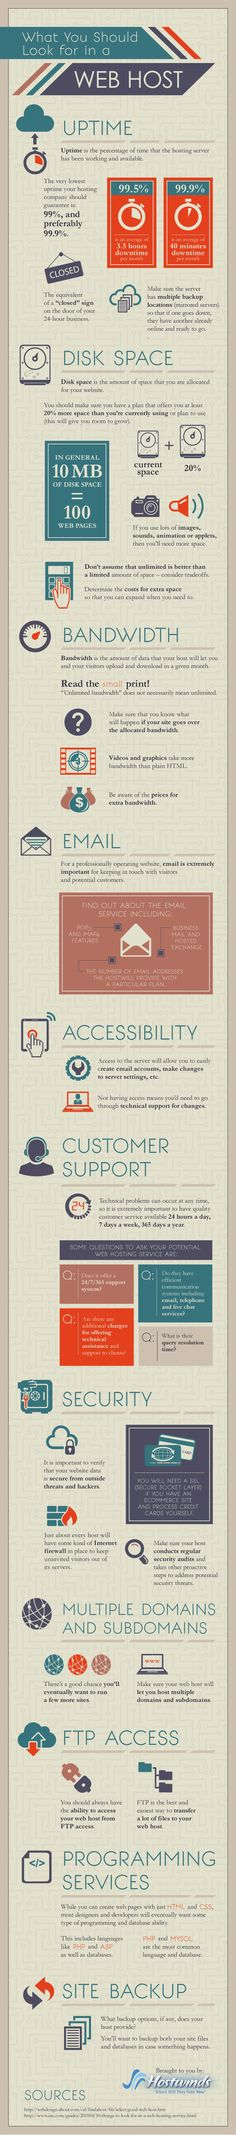 What You Should Look for in a Web Host. Infographic. Key Concerns For Anyone Seeking a New Web Host